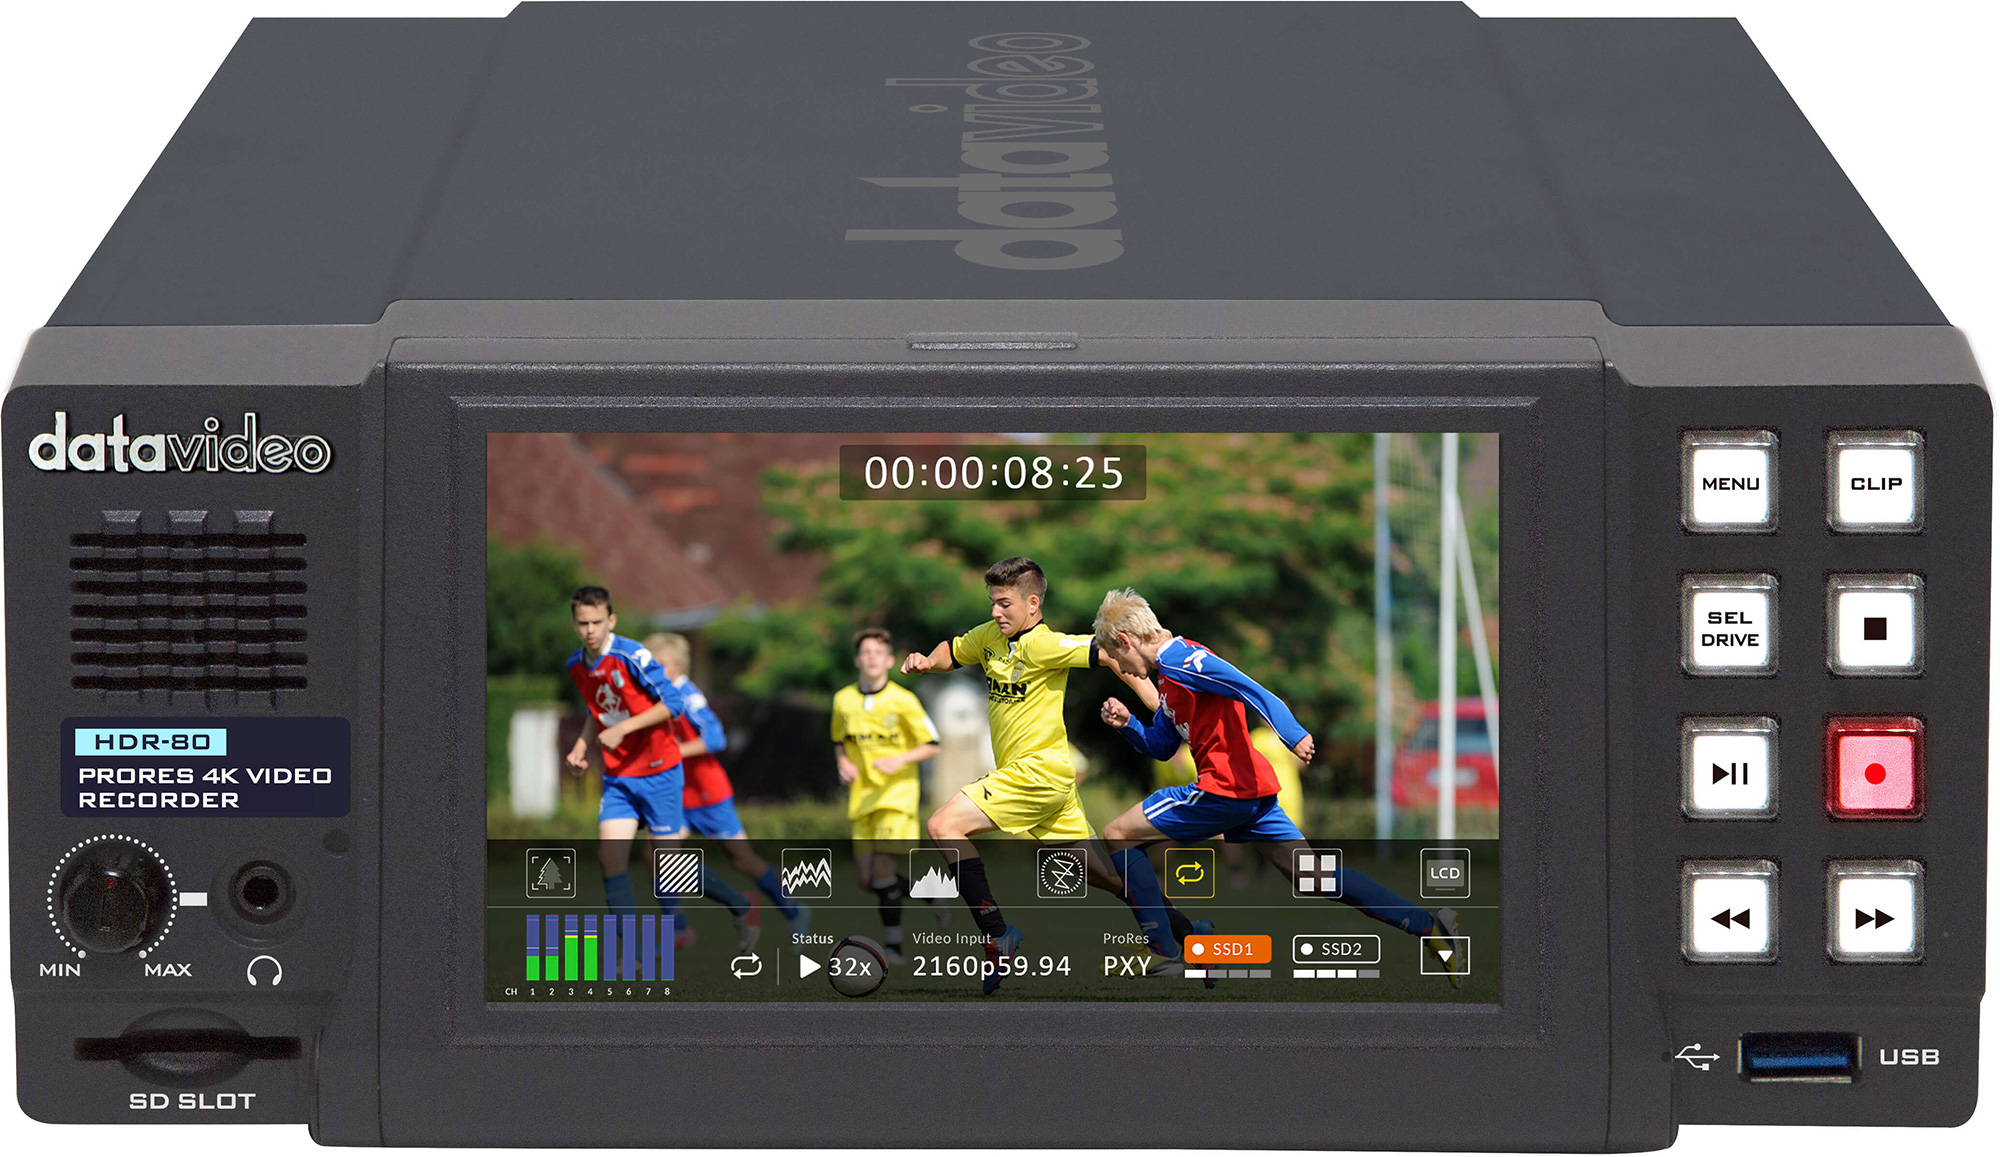 Datavideo HDR-80 4K ProRes Digital Video Recorder with Touch Screen Panel - Desktop Model DV-HDR-80